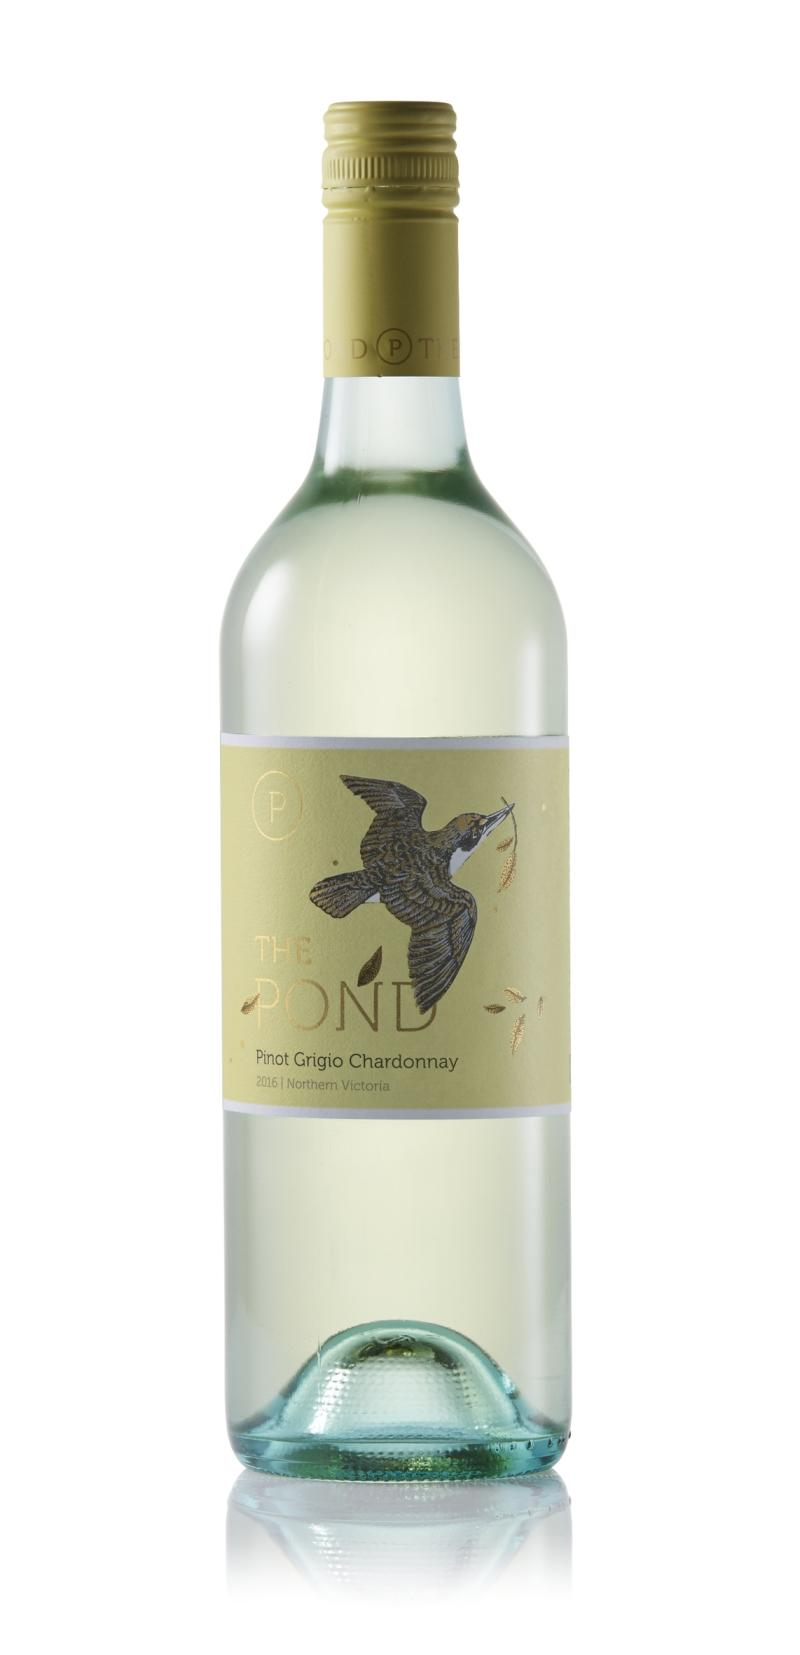 The Pond Pinot Grigio 2019 Aldi